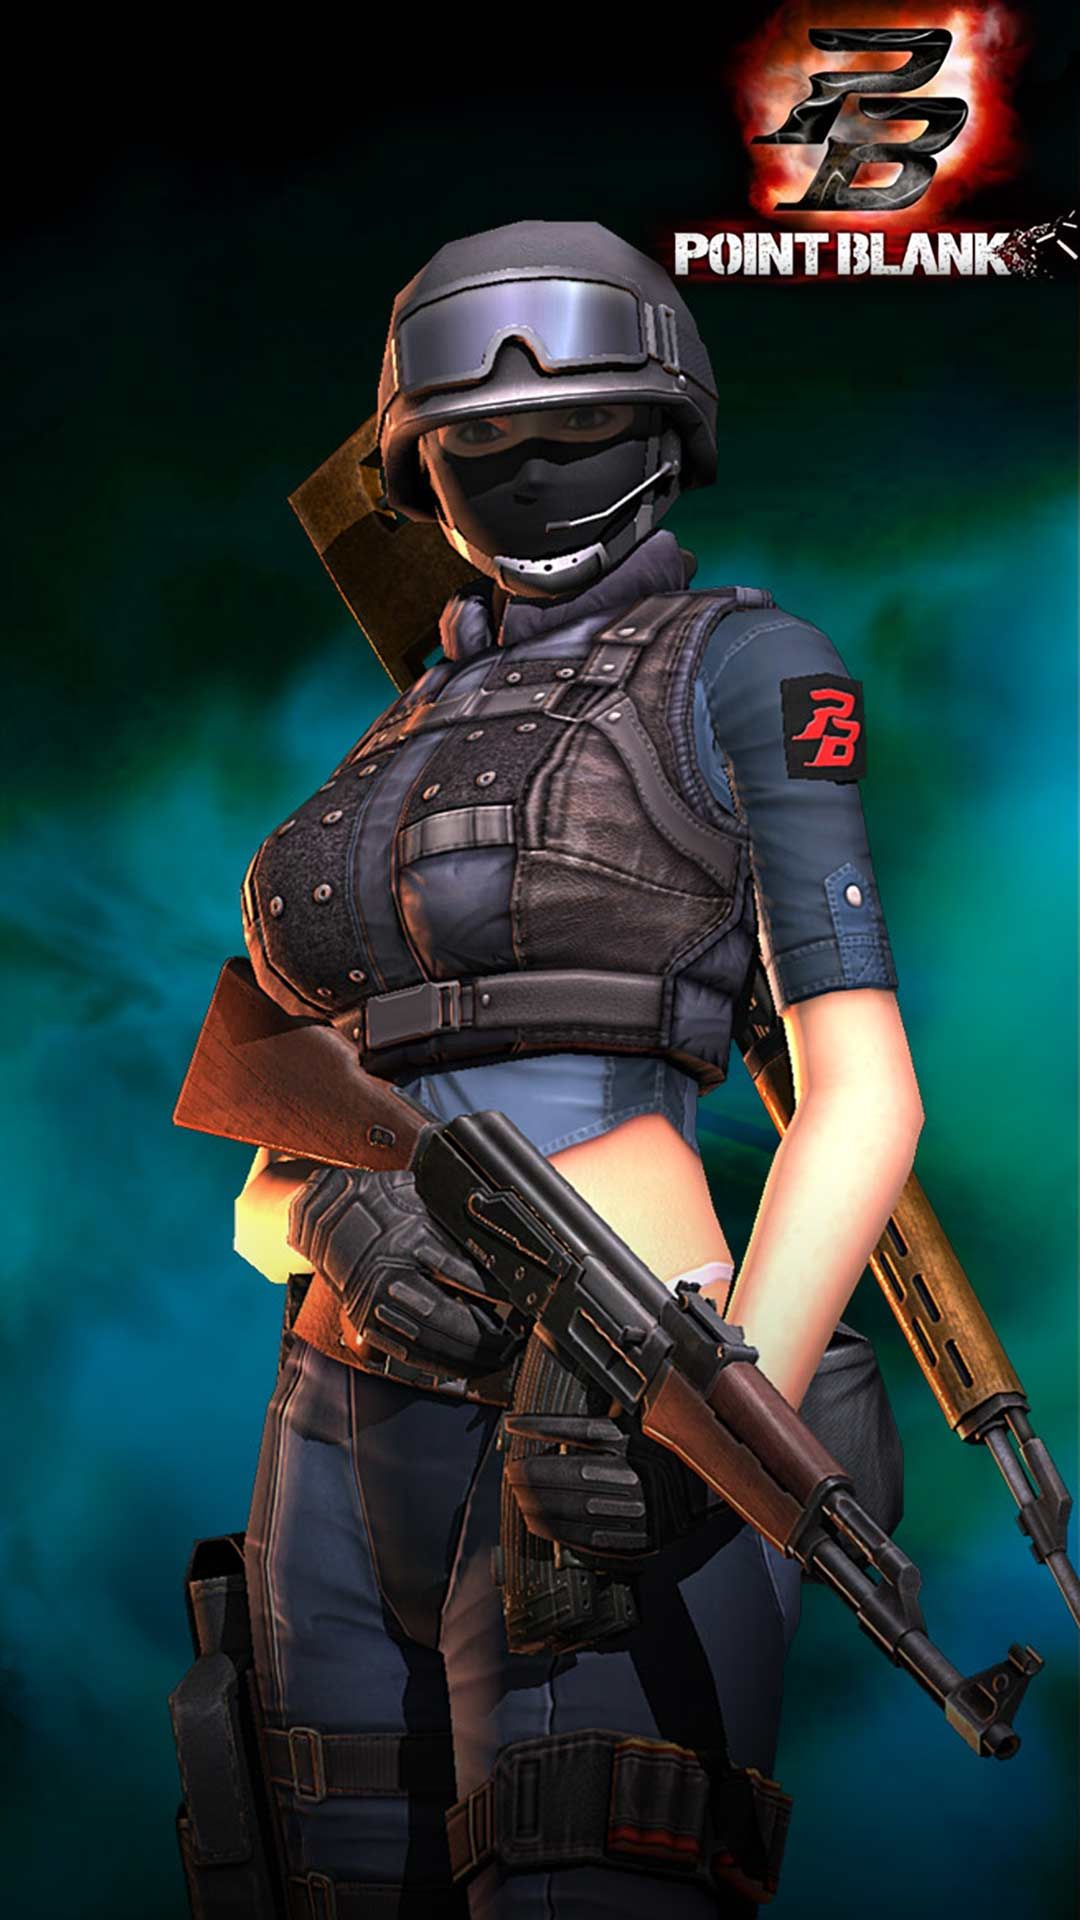 Point Blank Characters | Cast List of Characters From Point Blank